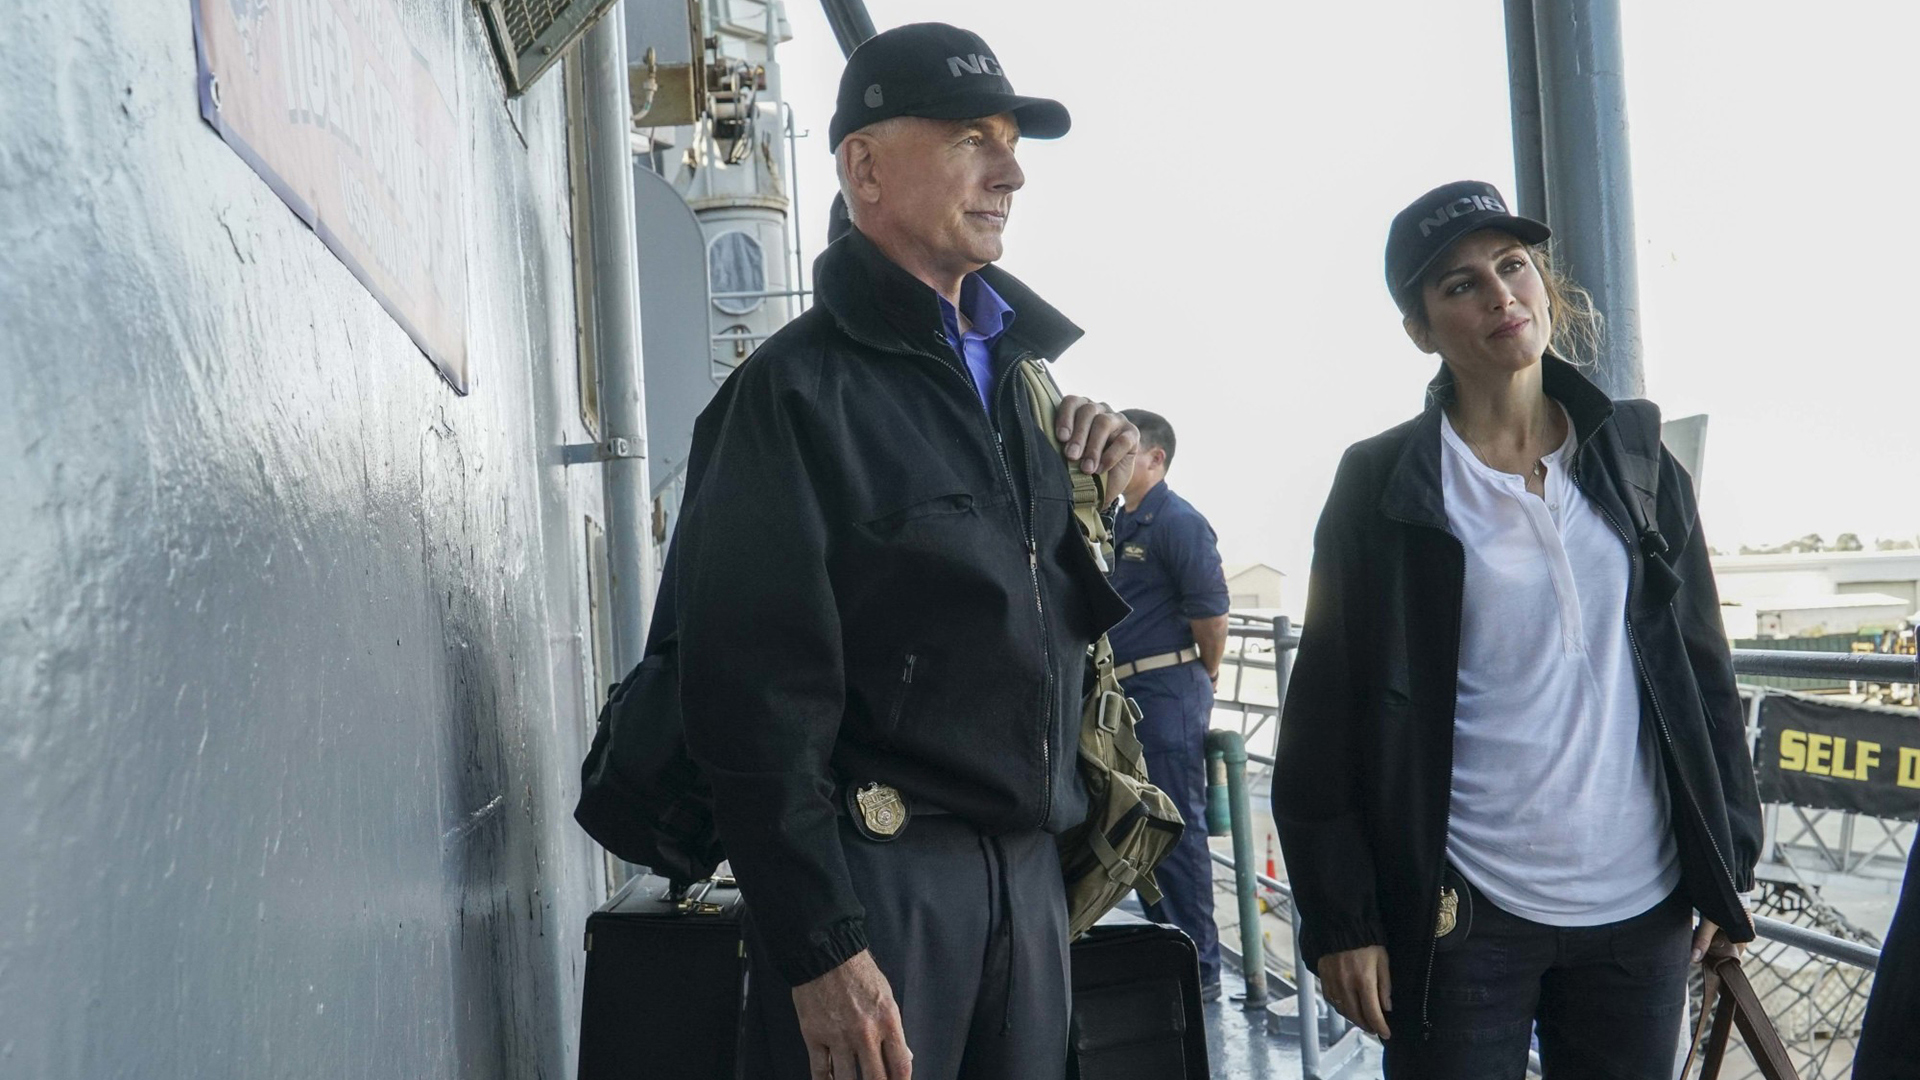 Gibbs and Quinn consult with one of the crew.